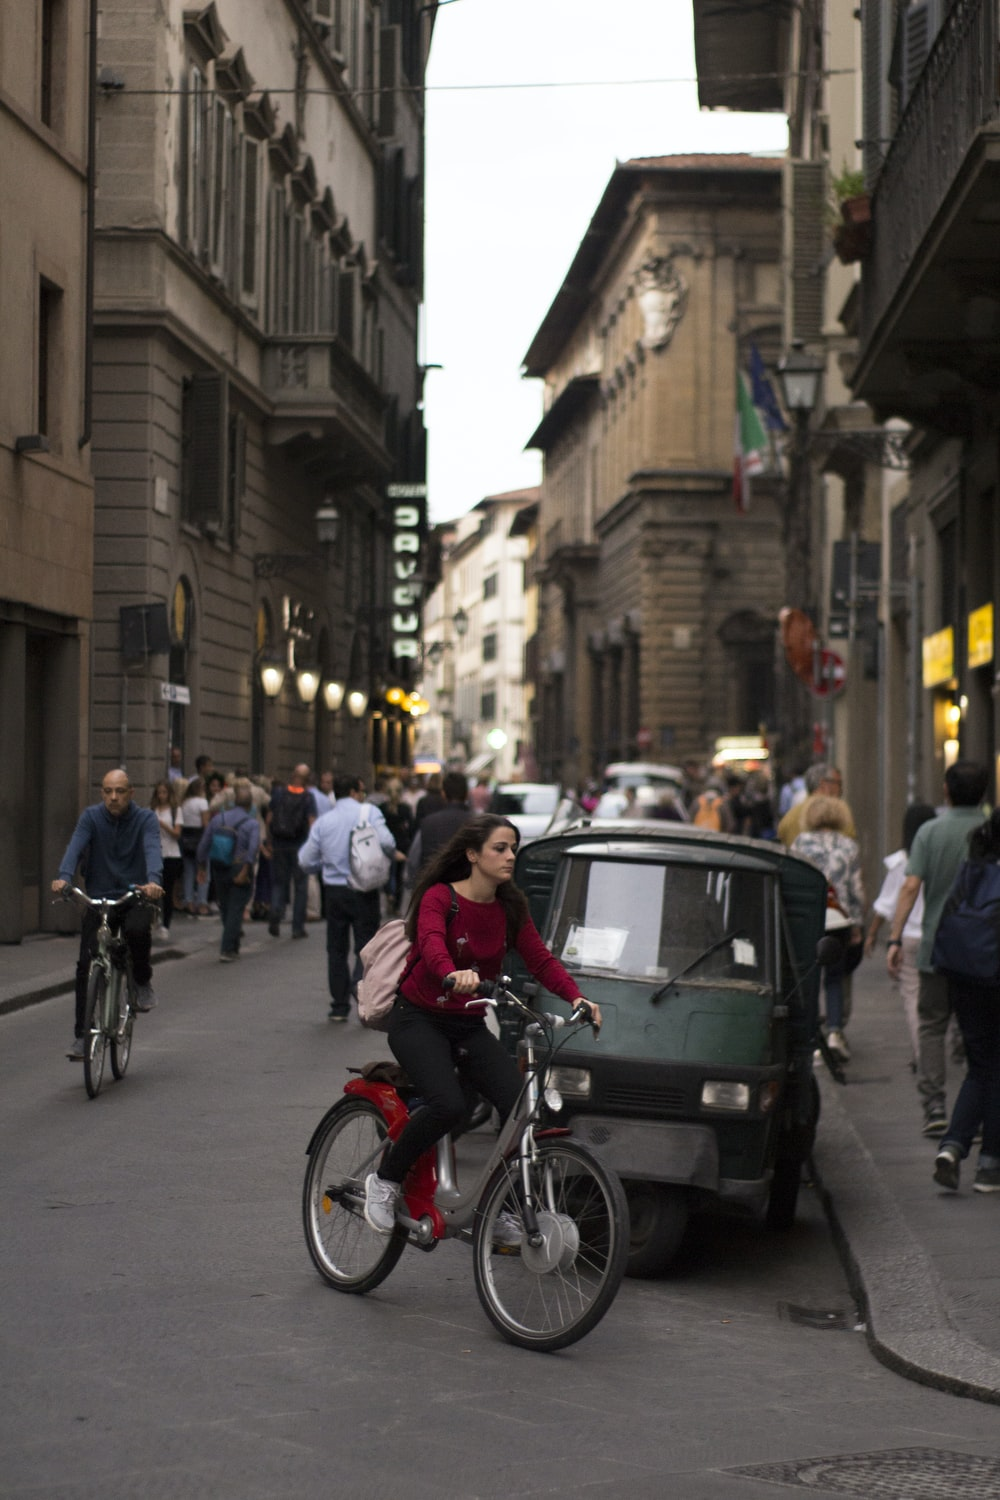 people riding bicycles on street during daytime